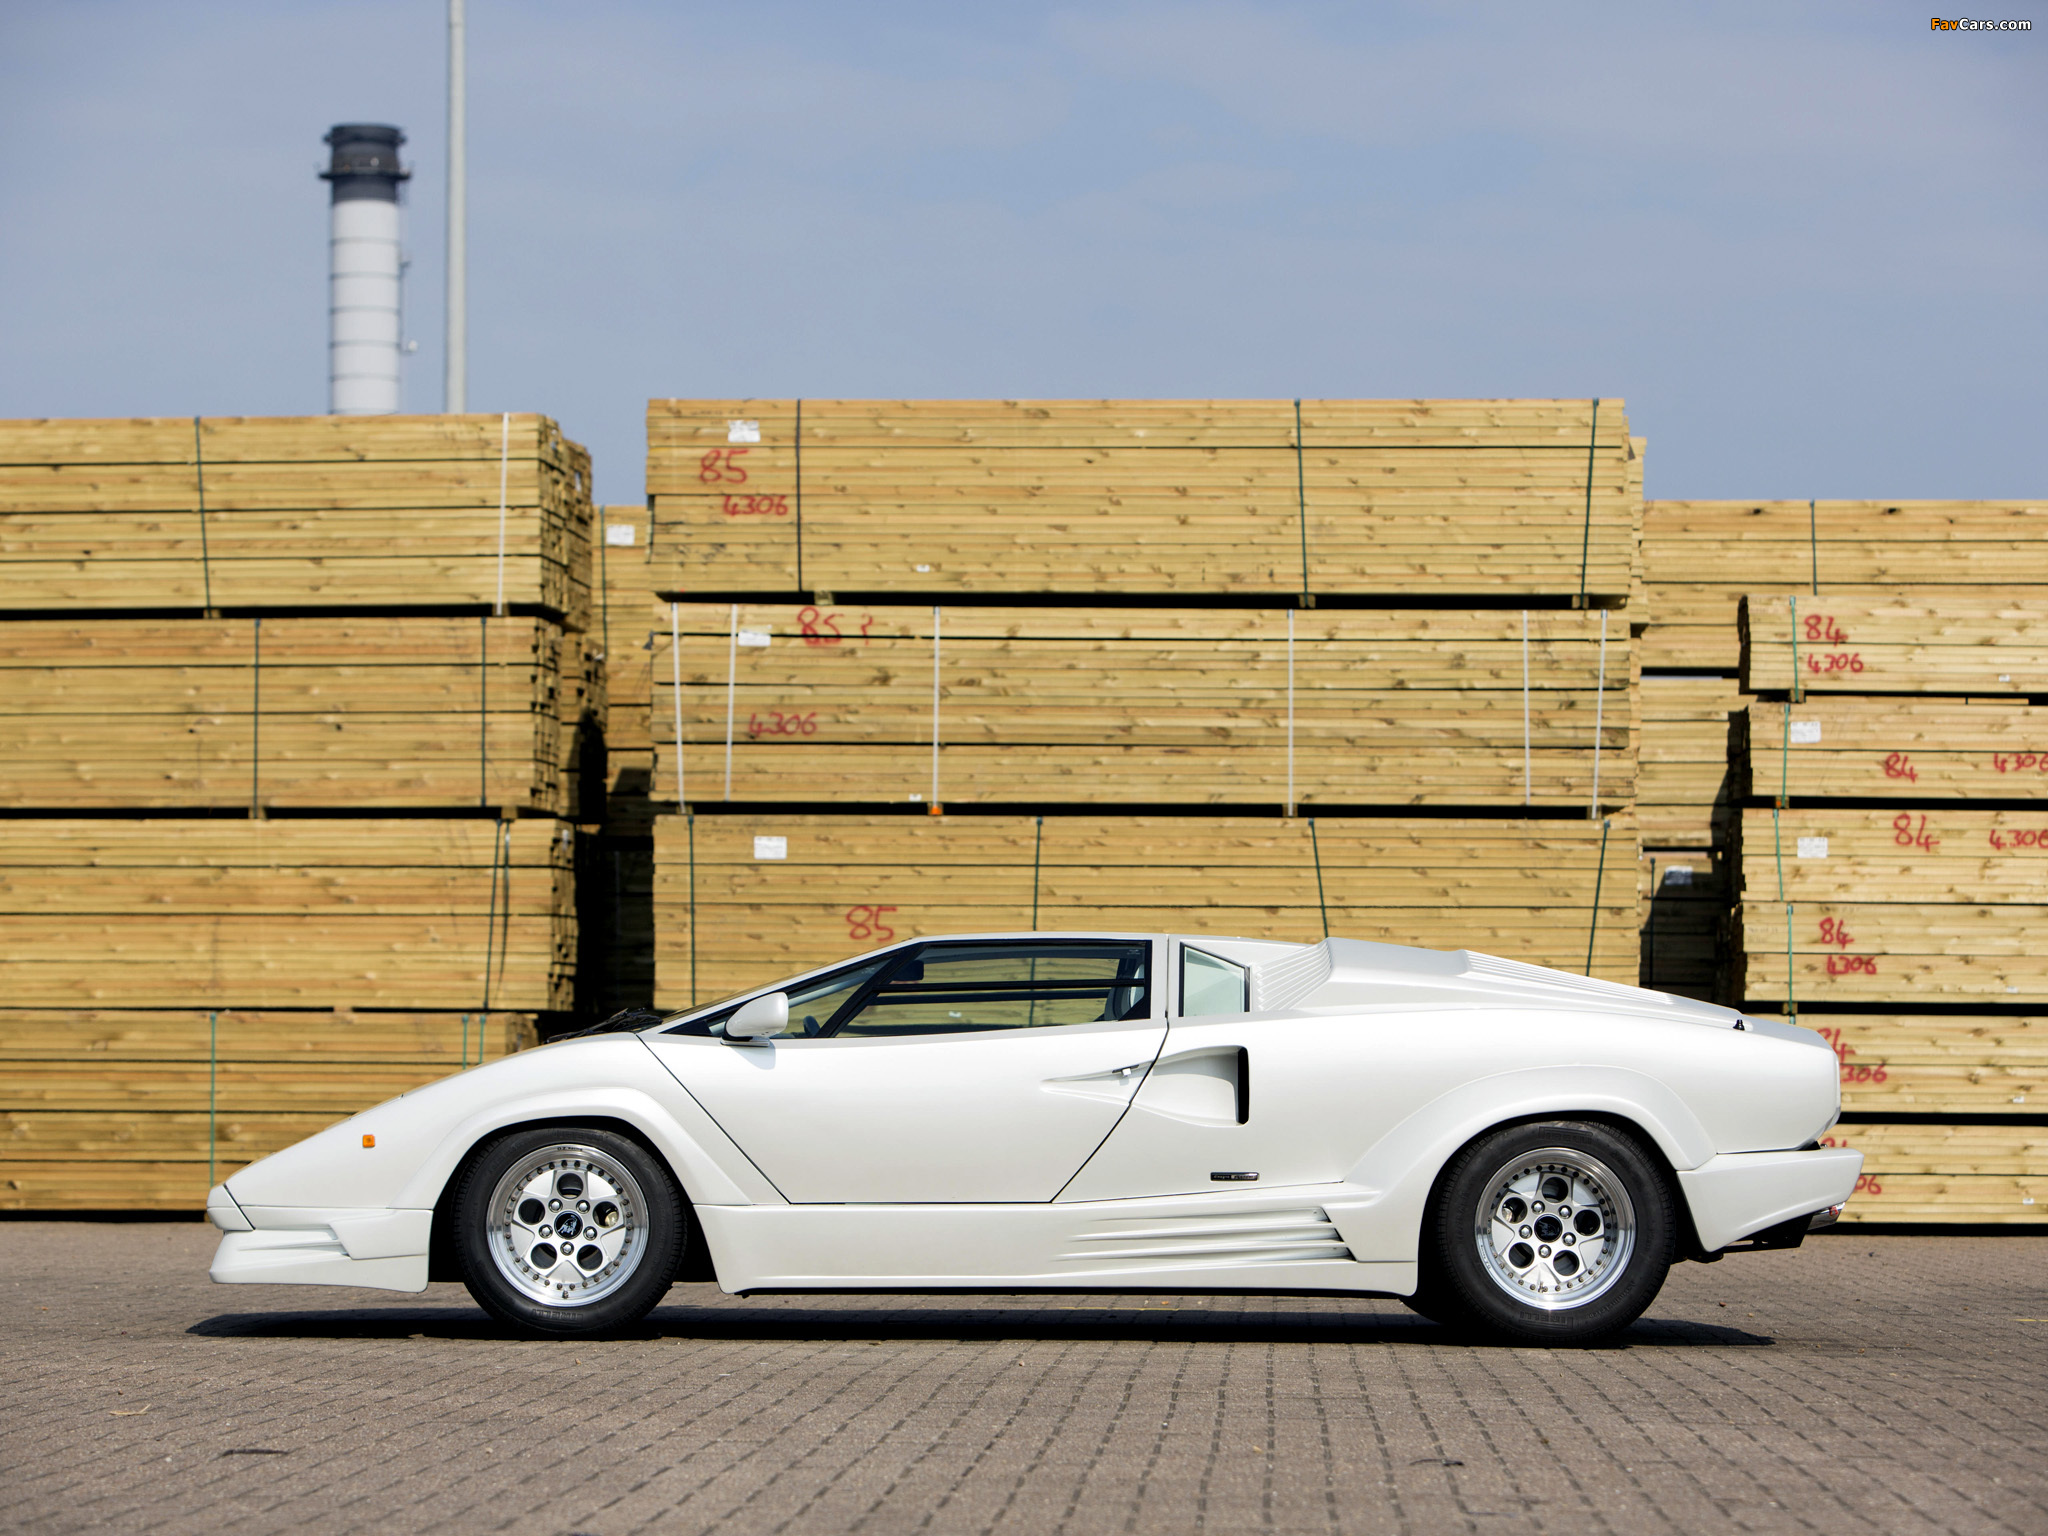 lamborghini countach 25th anniversary uk spec 1988 90 images 2048x1536. Black Bedroom Furniture Sets. Home Design Ideas